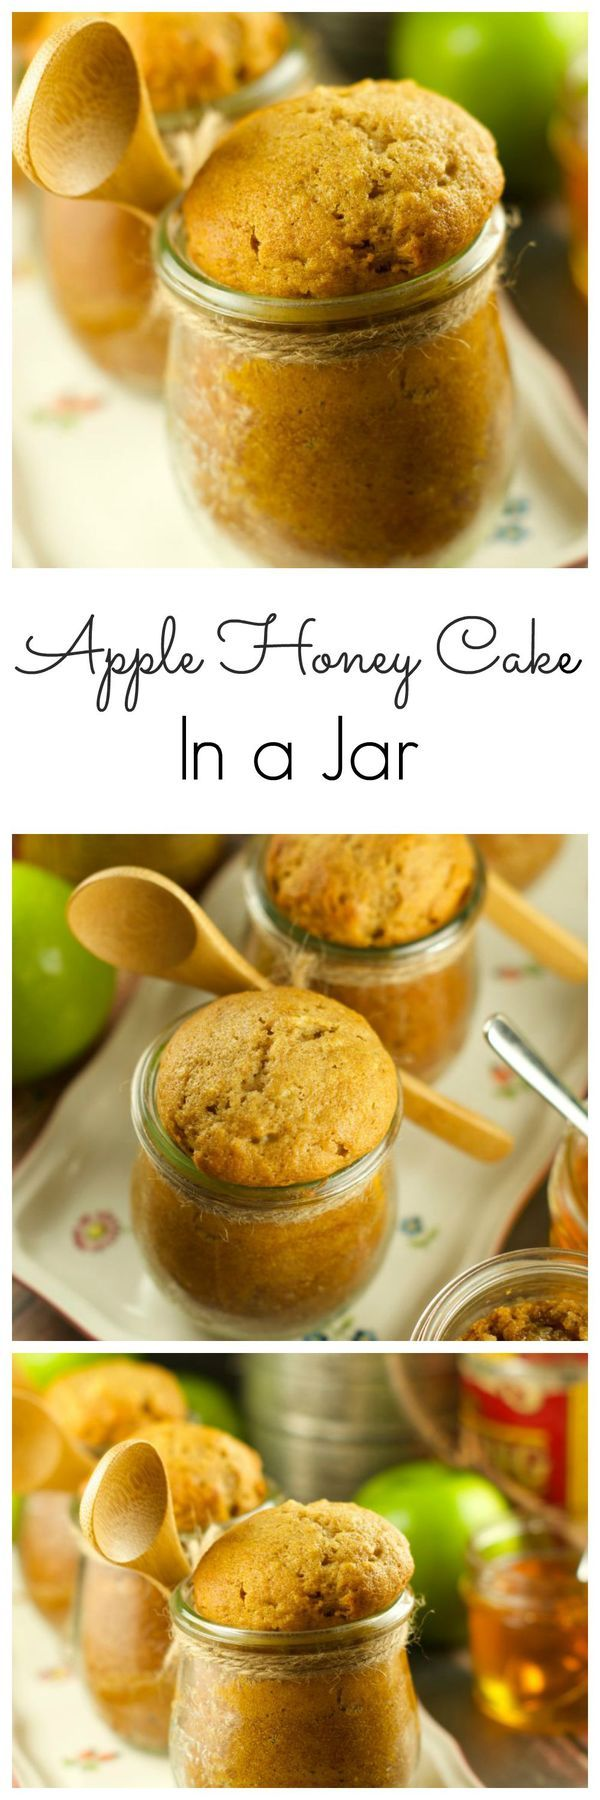 Apple Honey Cake In A Jar: celebrate Rosh Hashanah with these delicious & moist apple honey cakes in a jar. Give them out as gifts or serve them for dessert. More jewish recipes at livingsweetmoments.